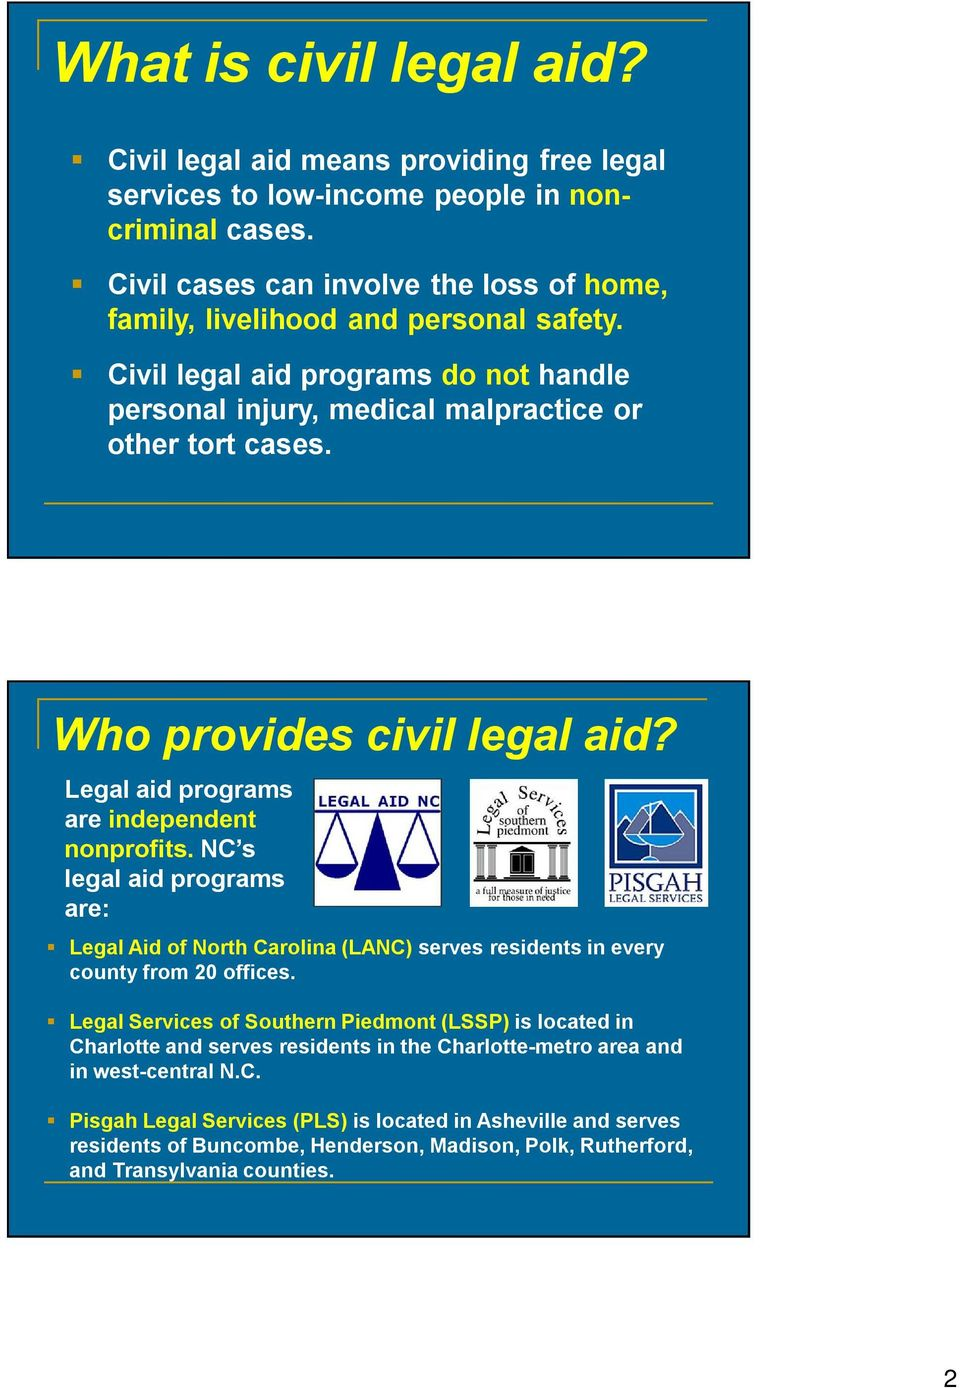 Who provides civil legal aid? Legal aid programs are independent nonprofits. NC s legal aid programs are: Legal Aid of North Carolina (LANC) serves residents in every county from 20 offices.